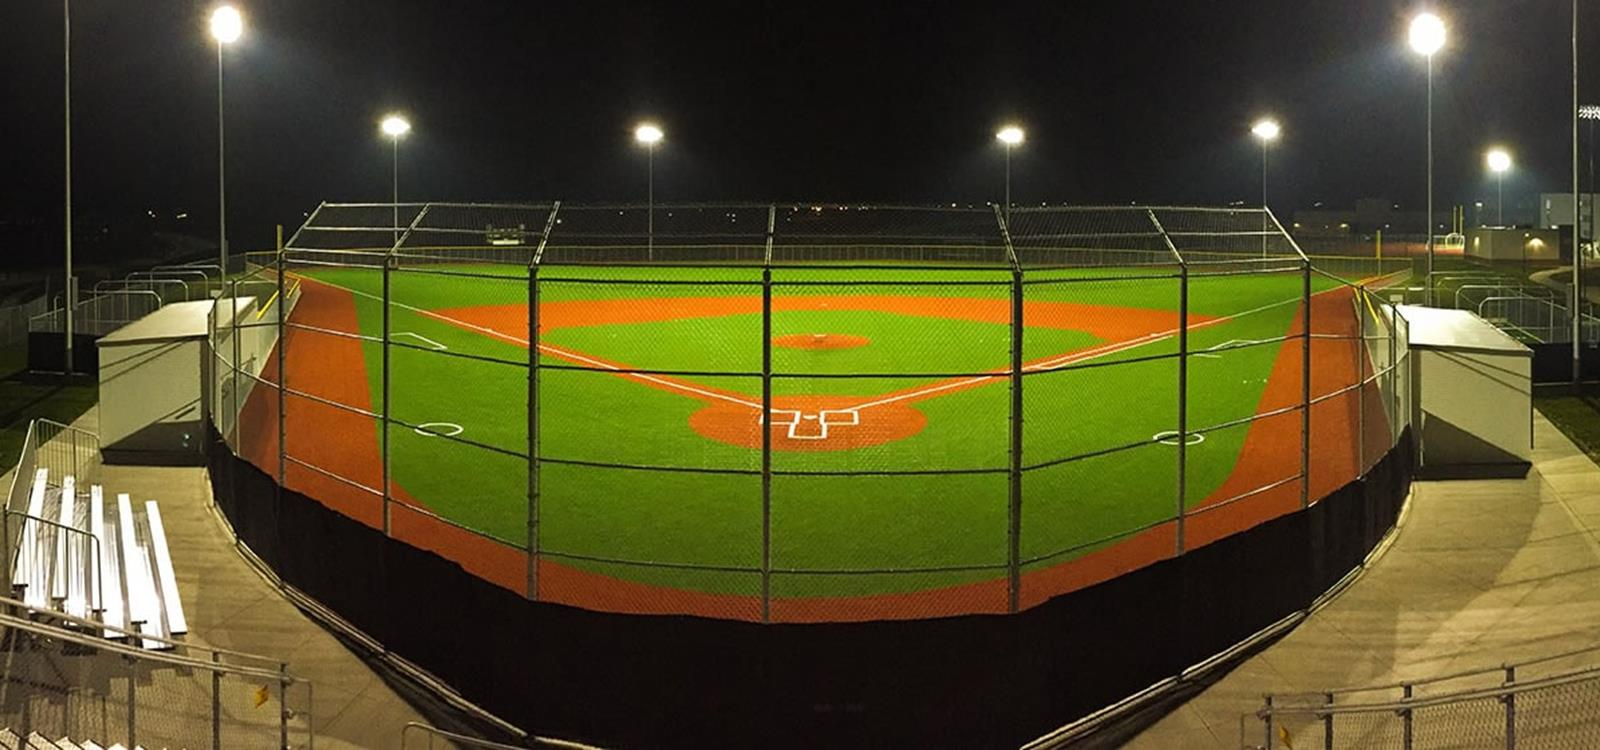 Bismarck Public Schools Athletic Complex Baseball Field 2